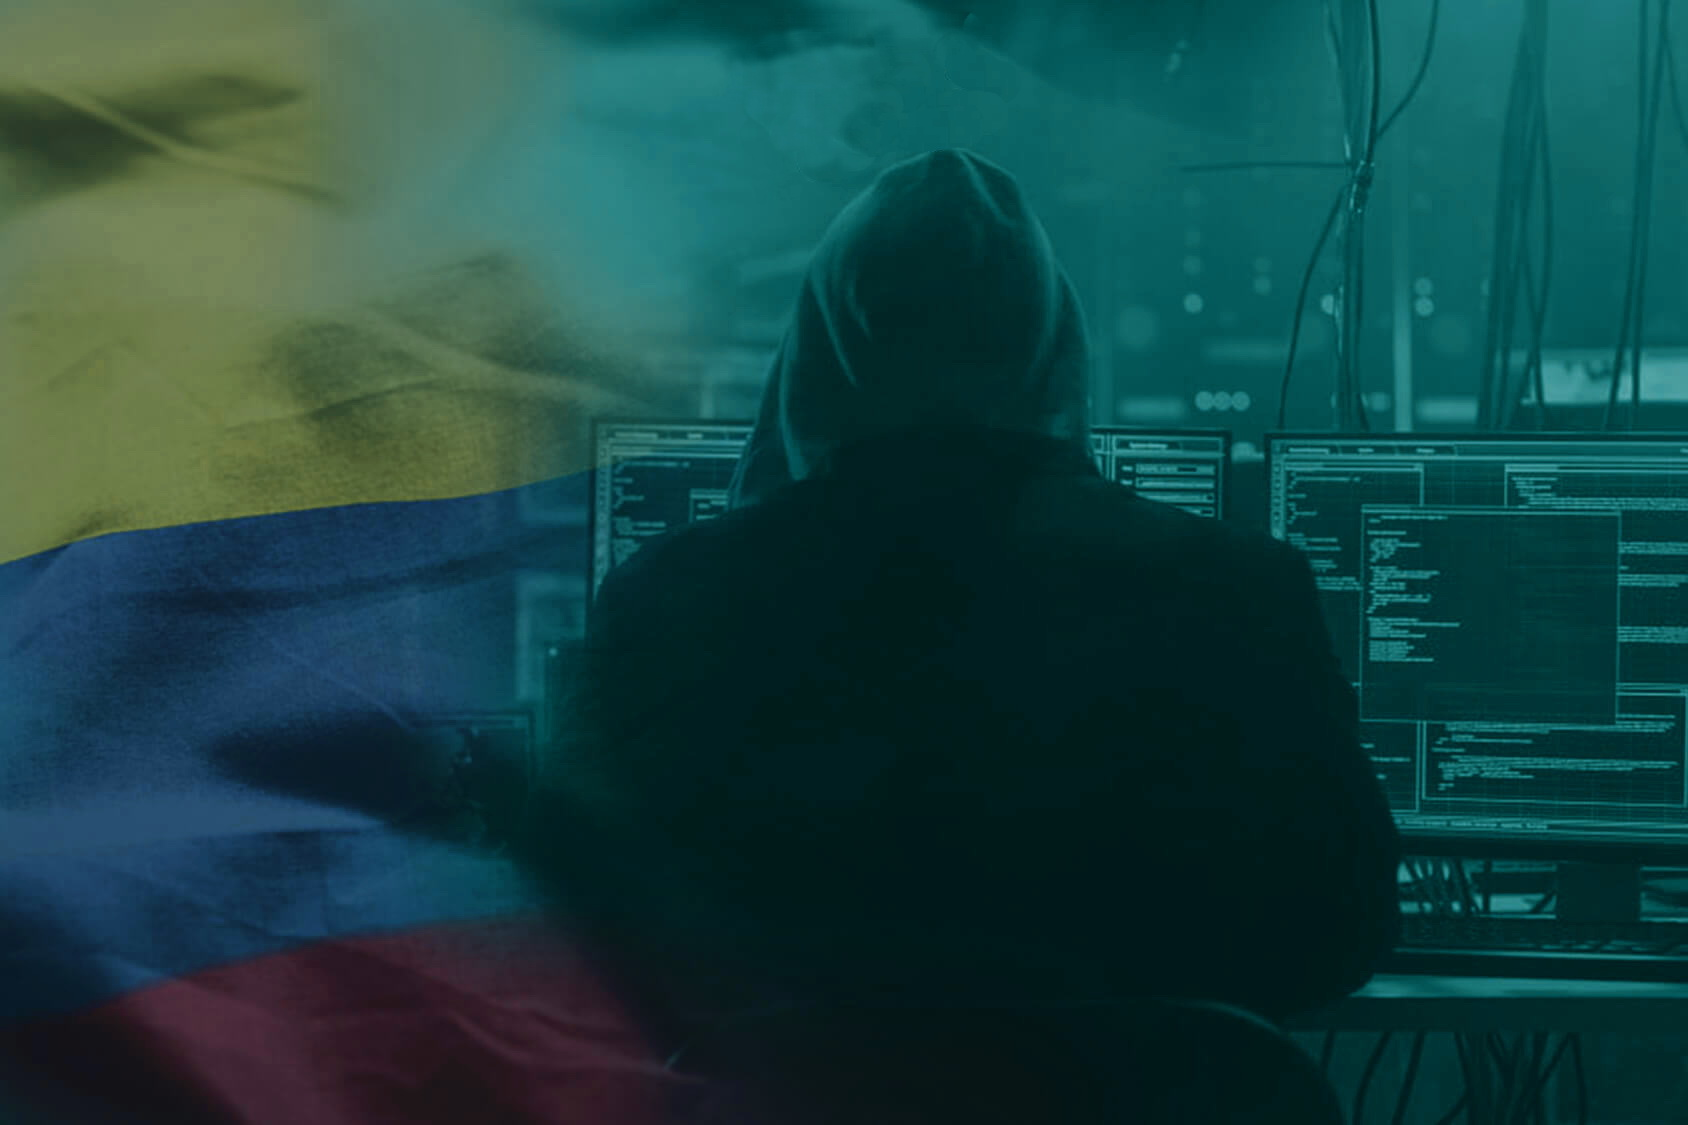 Hackers attack industries in Colombia